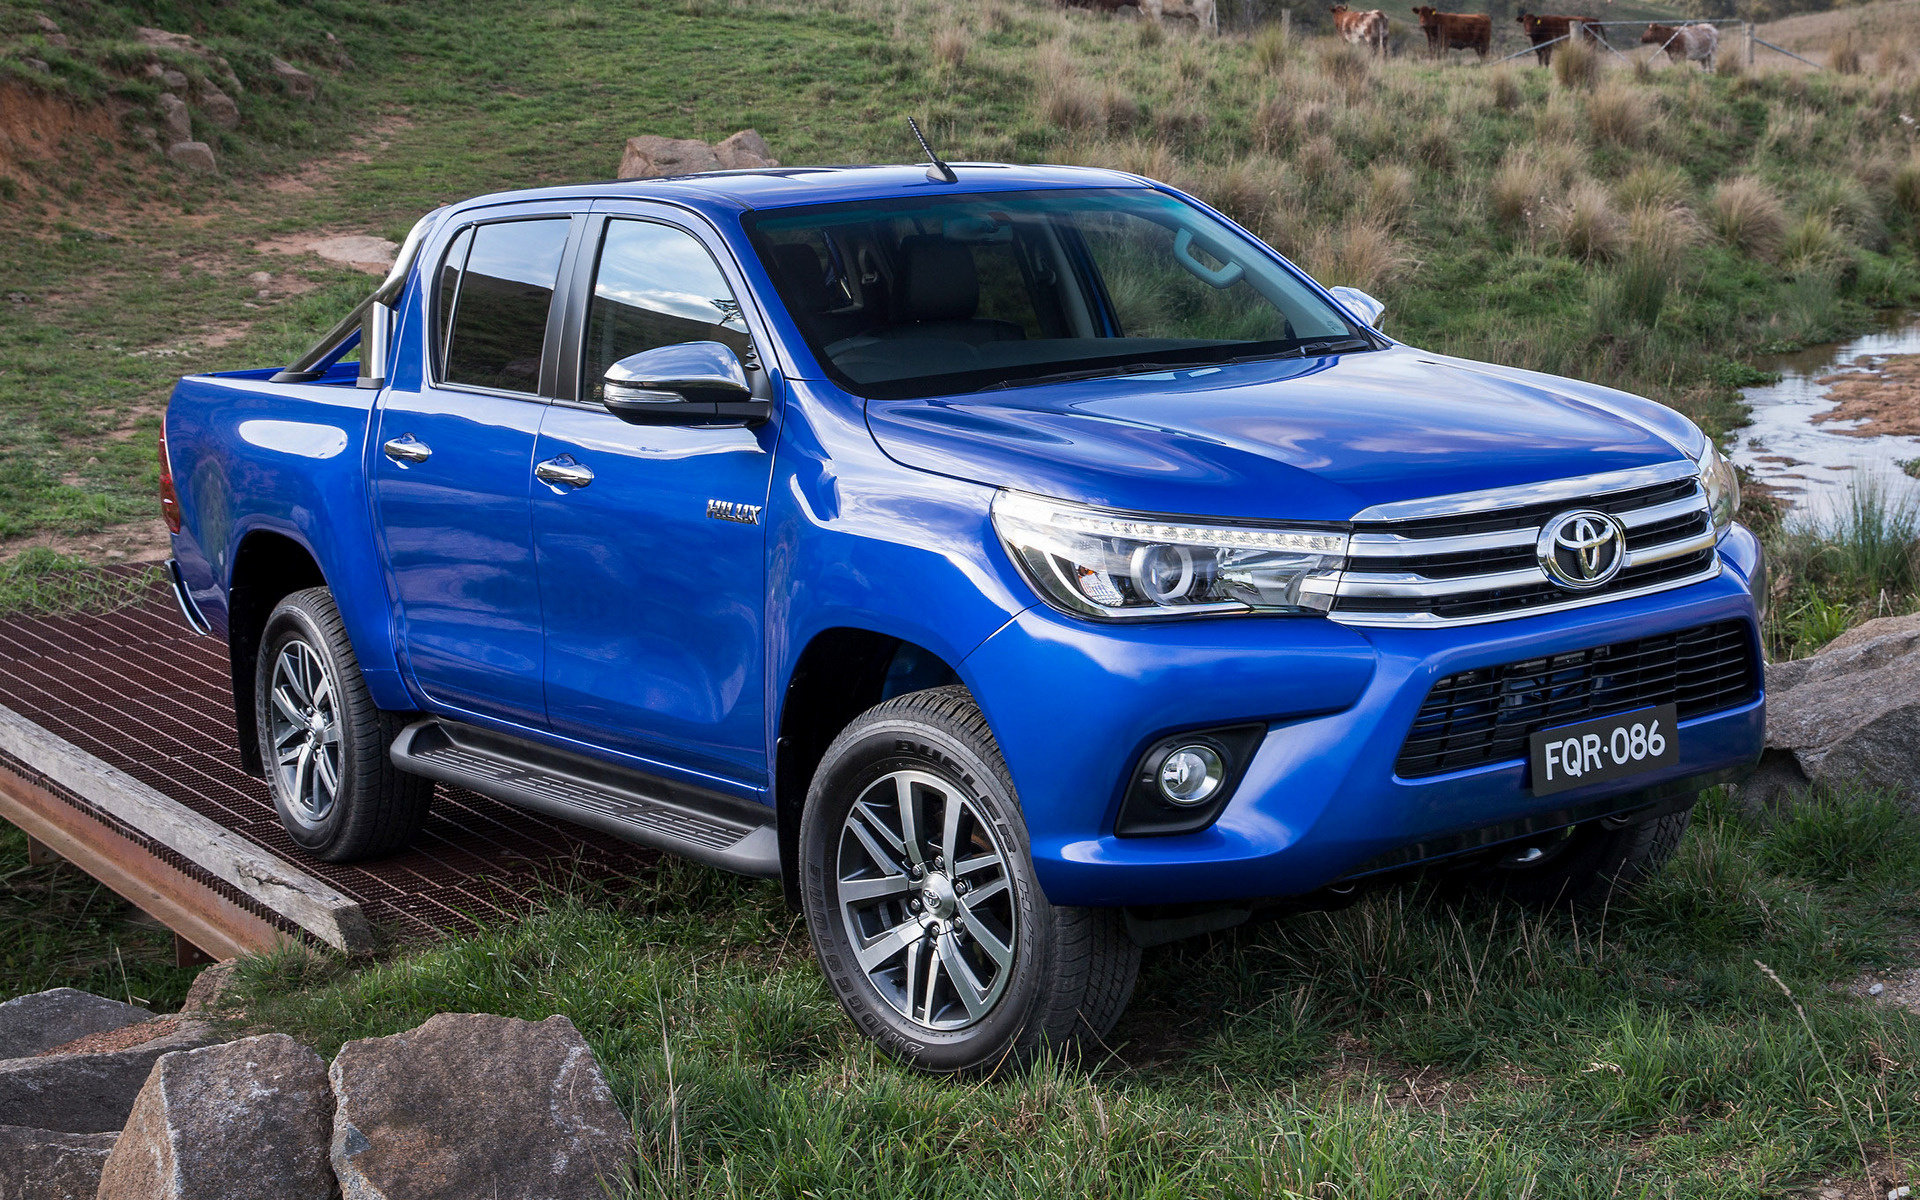 Toyota hilux sr5 double cab 2015 au wallpapers and hd images car wide 85 toyota hilux swarovskicordoba Choice Image